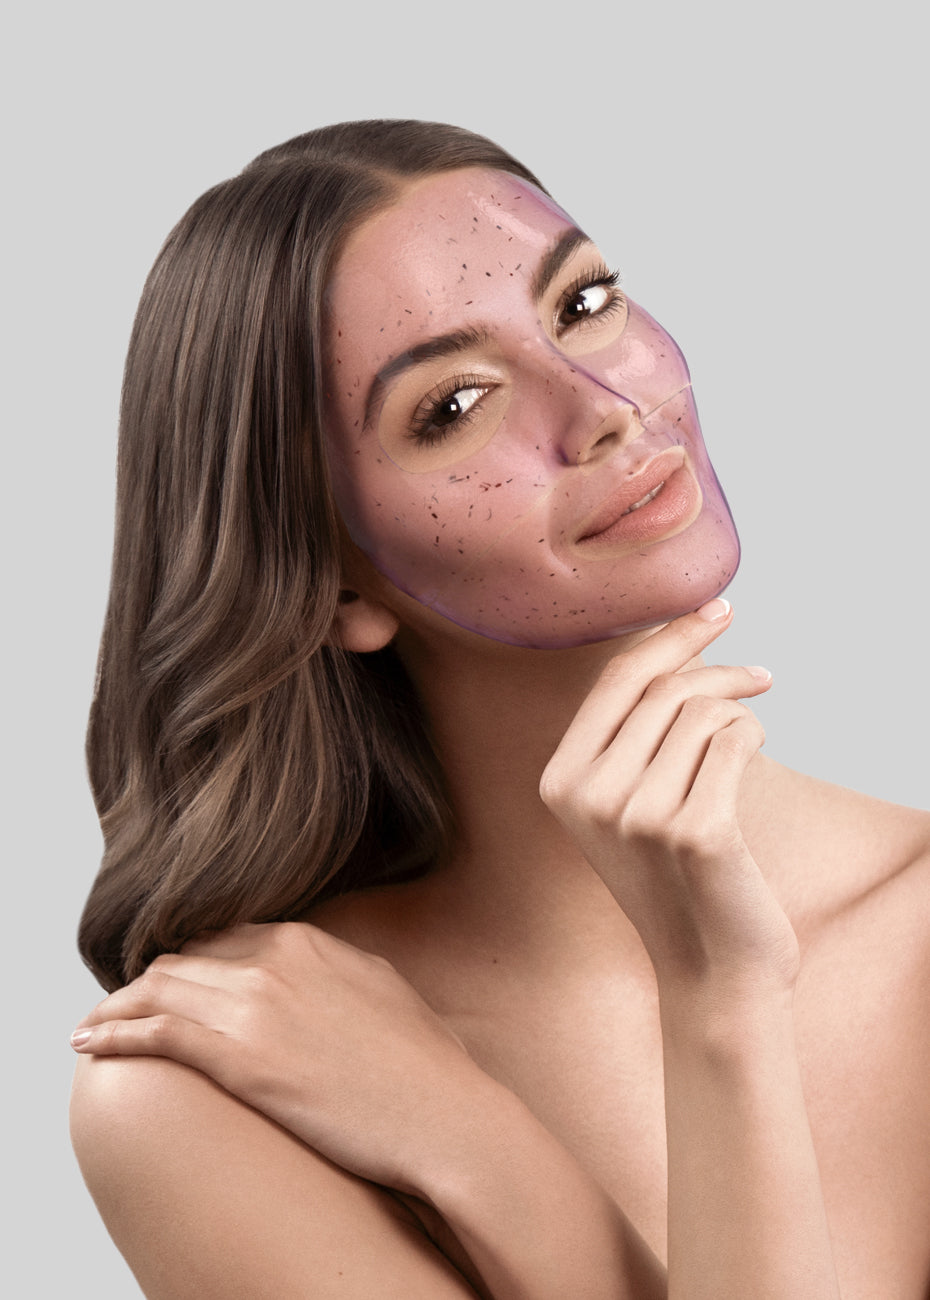 Lavender Youth Miracle Hydrogel Mask